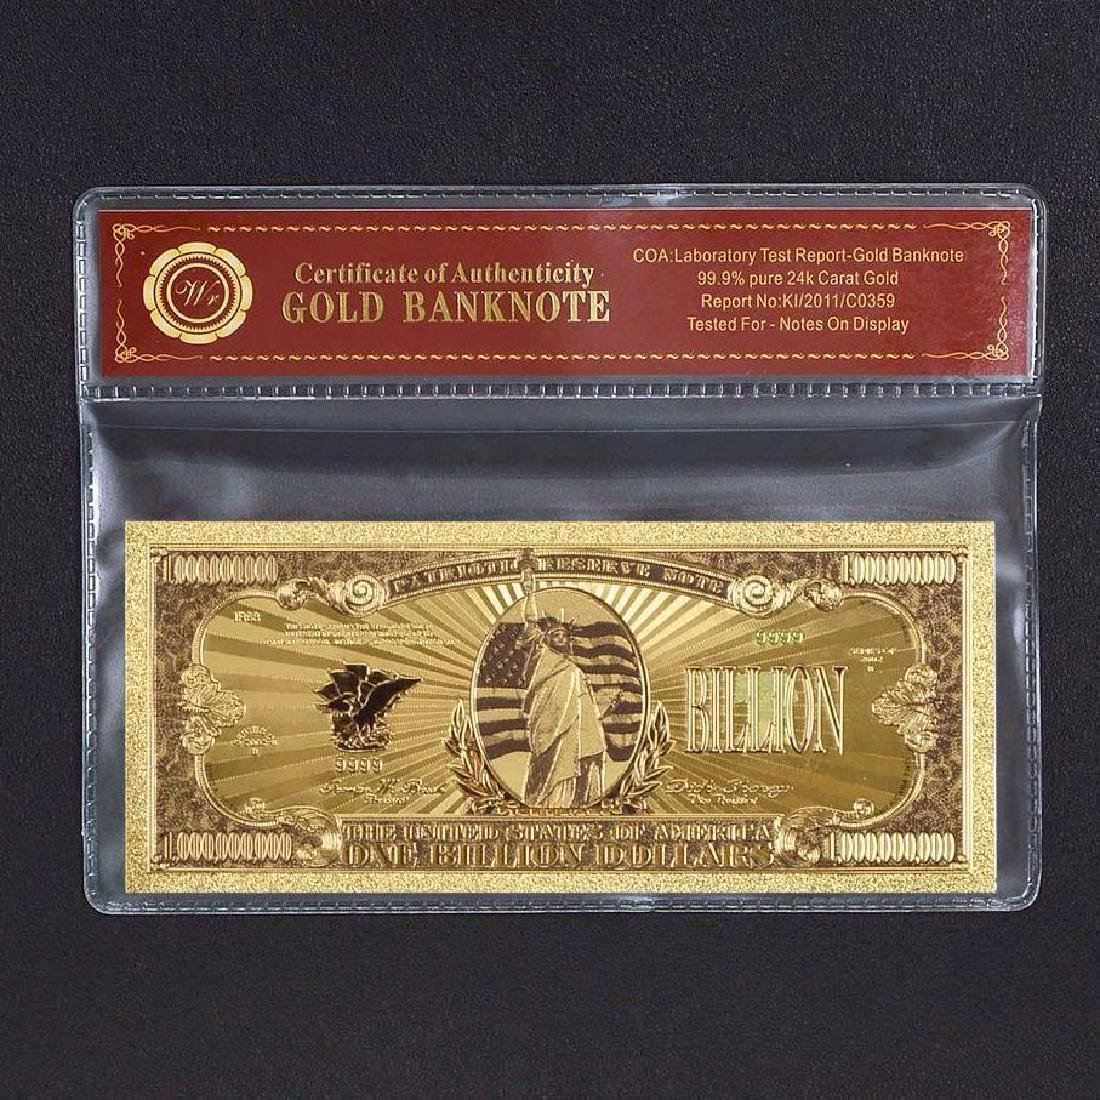 USA $1,000,000,000 Colored 24K Gold Clad Banknote